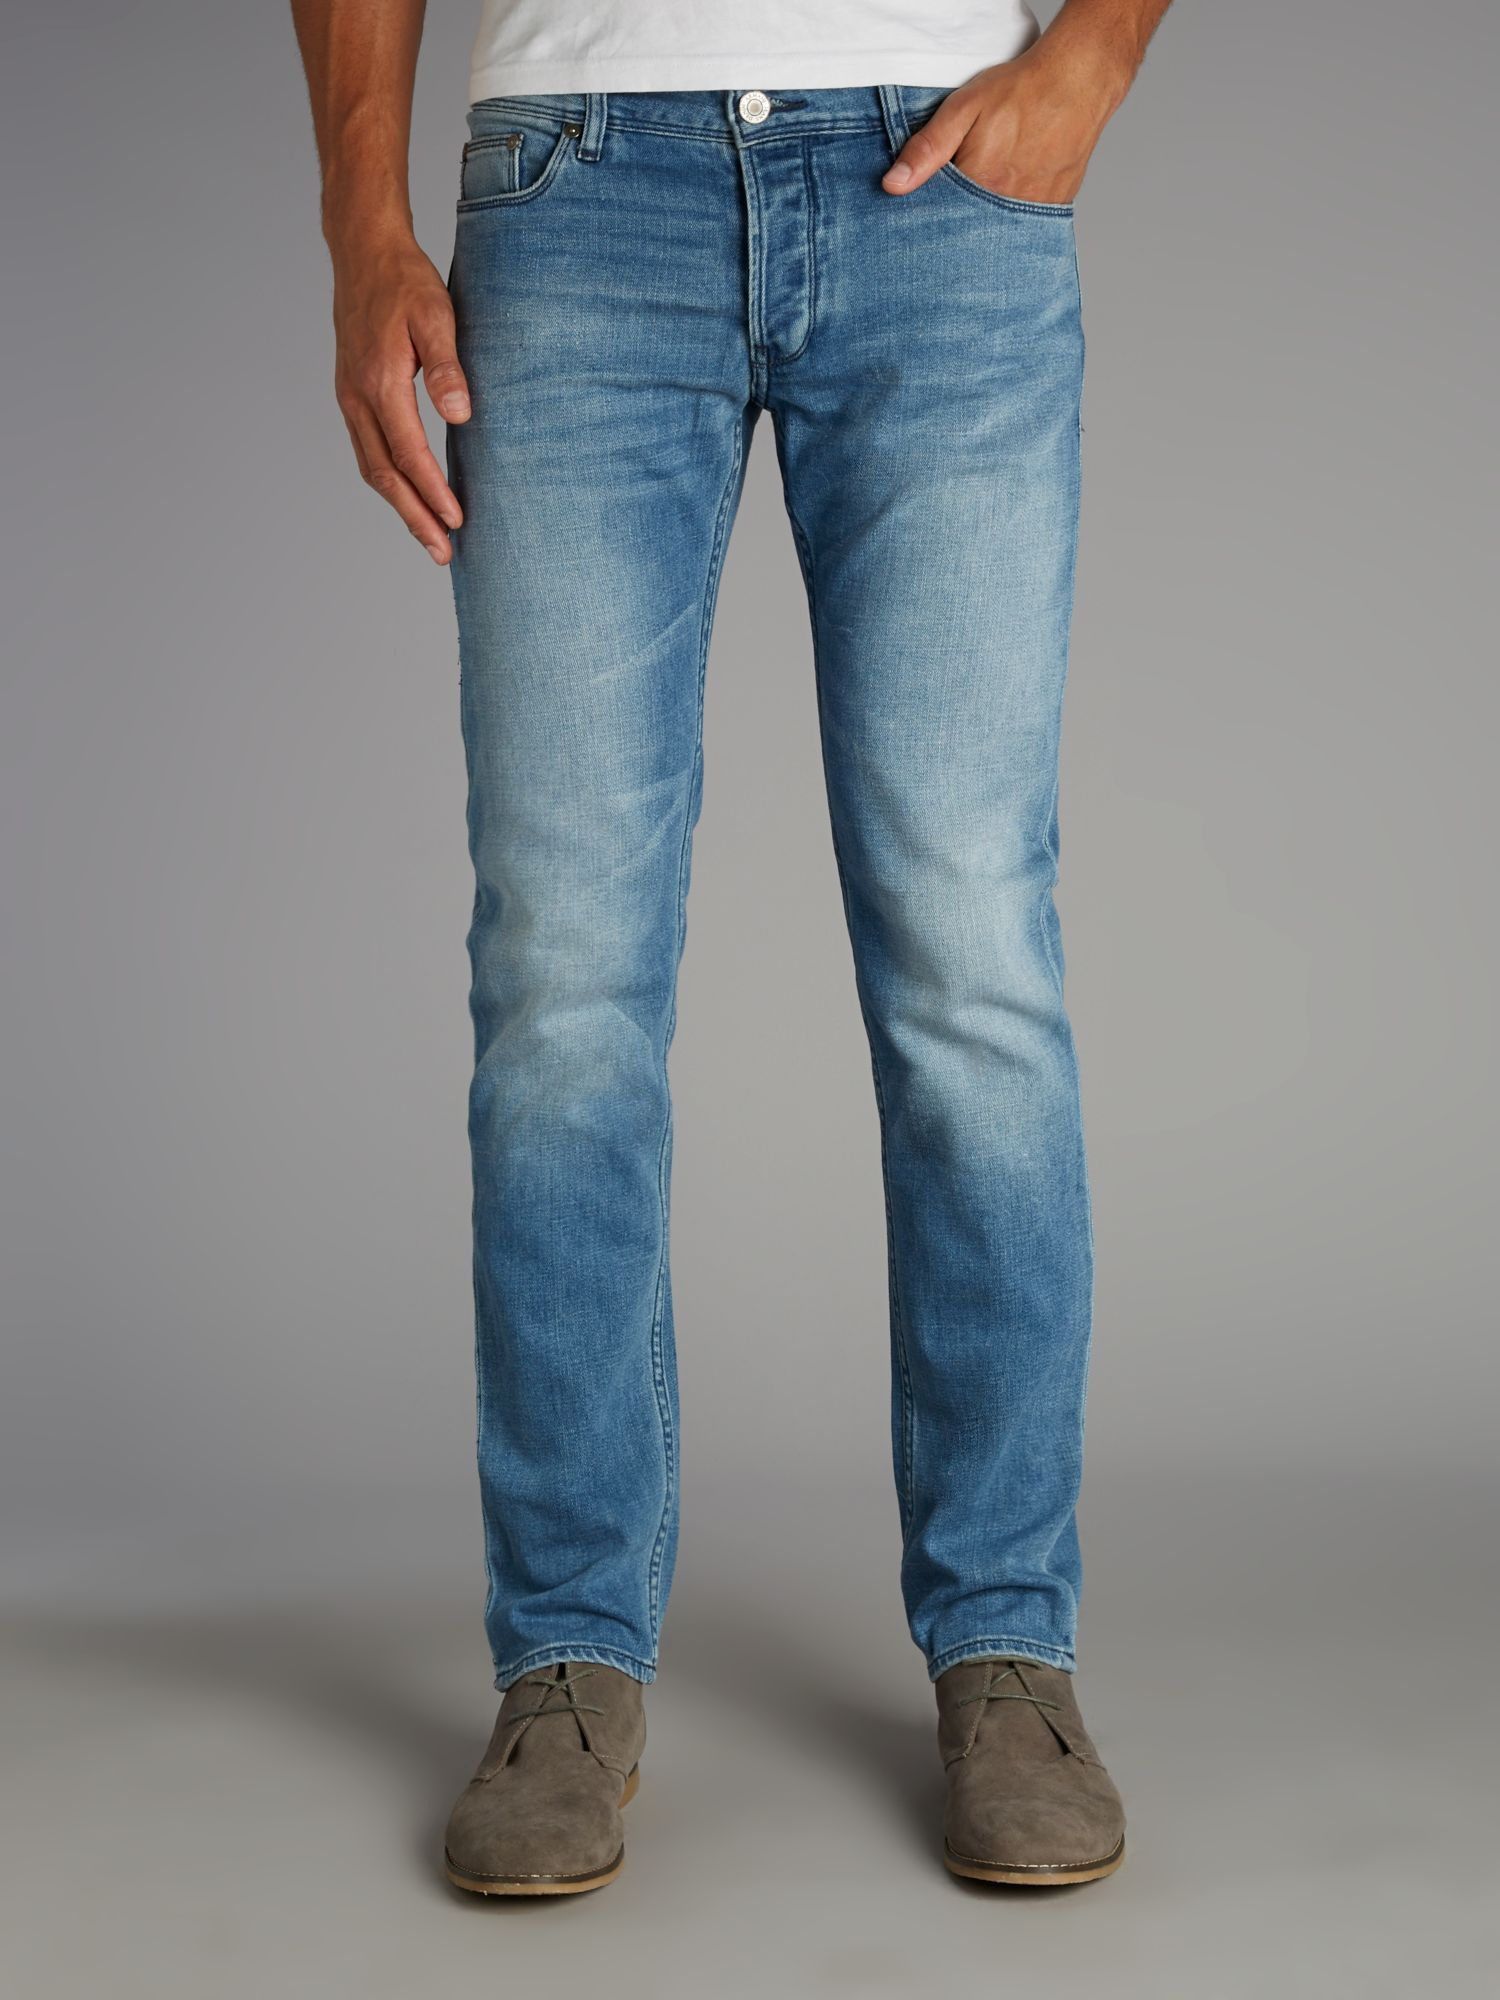 Free shipping and returns on Men's Light Blue Wash Jeans & Denim at seebot.ga